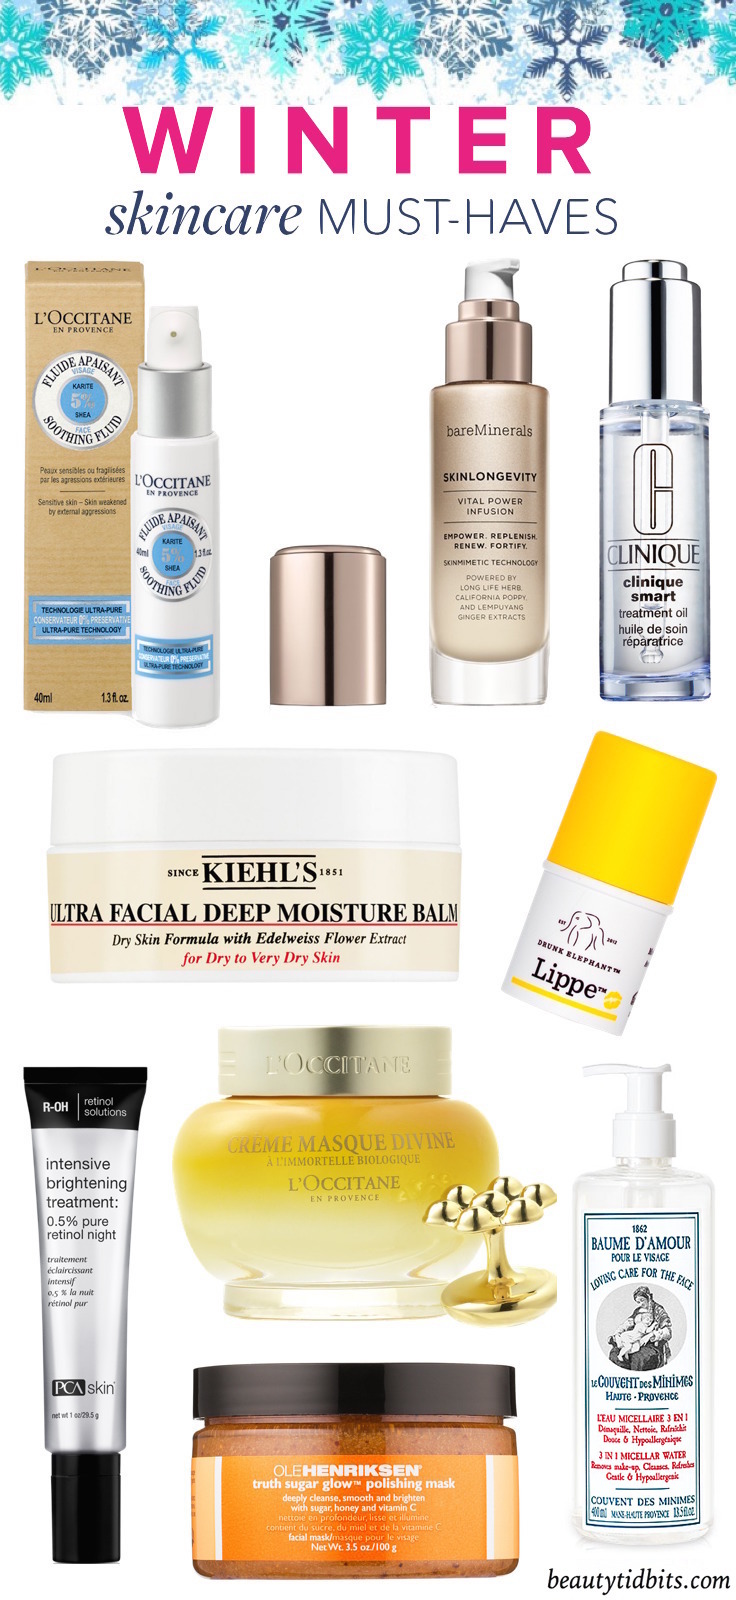 Save your skin with these winter skincare essentials, which are designed to soothe, nourish and lock moisture in—no matter how frigid things get outside!